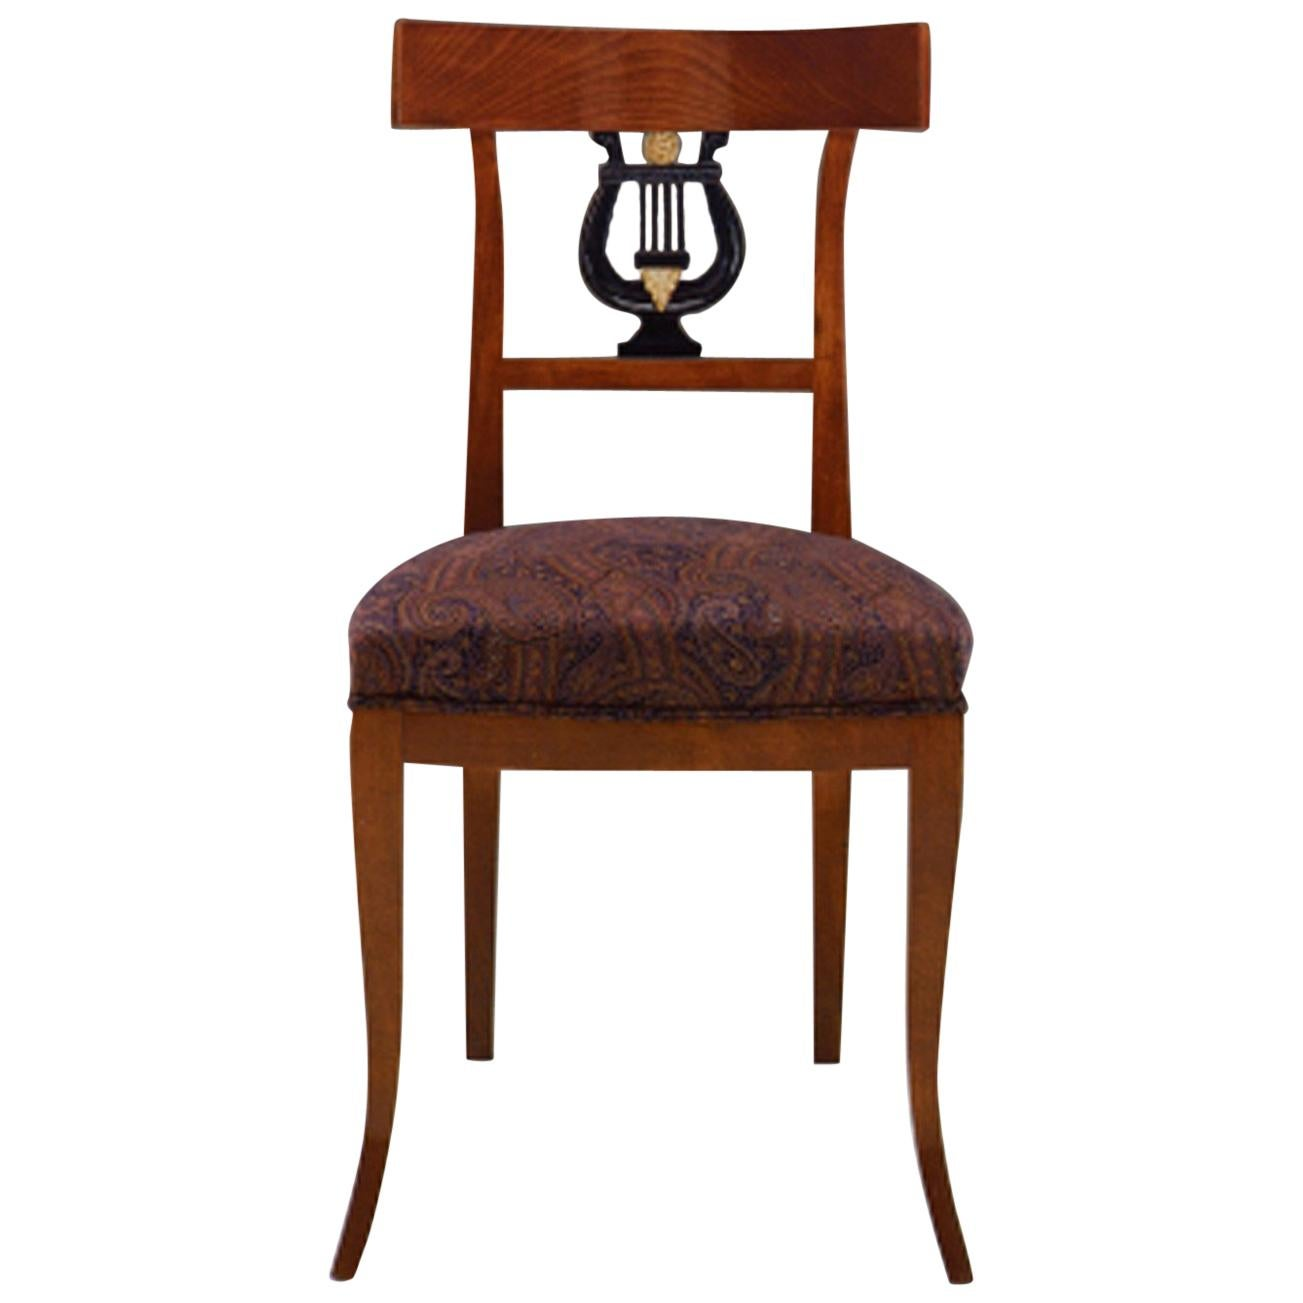 Dining Chair Dimensions 20th Century Neoclassical Dining Chair